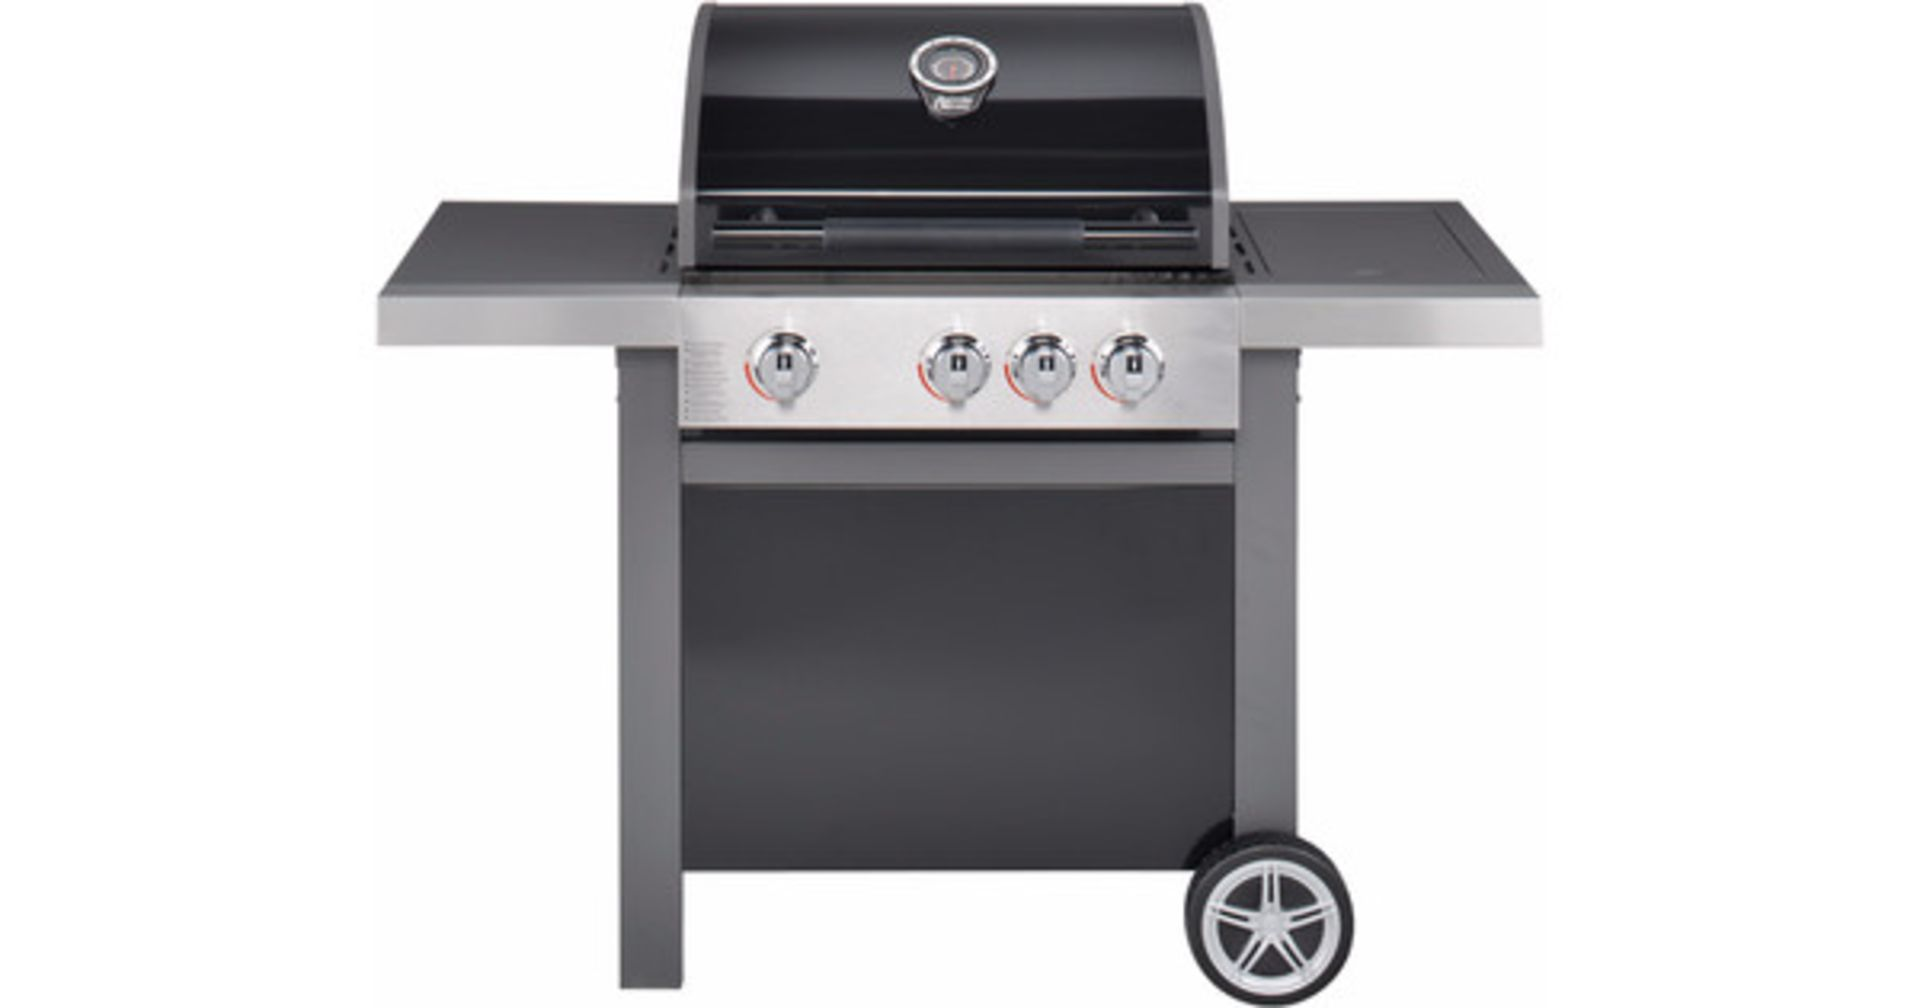 Lot 15023 - + VAT Brand New Jamie Oliver Home 3s Barbecue - Three Burners With Cast Iron Grills - Includes Side